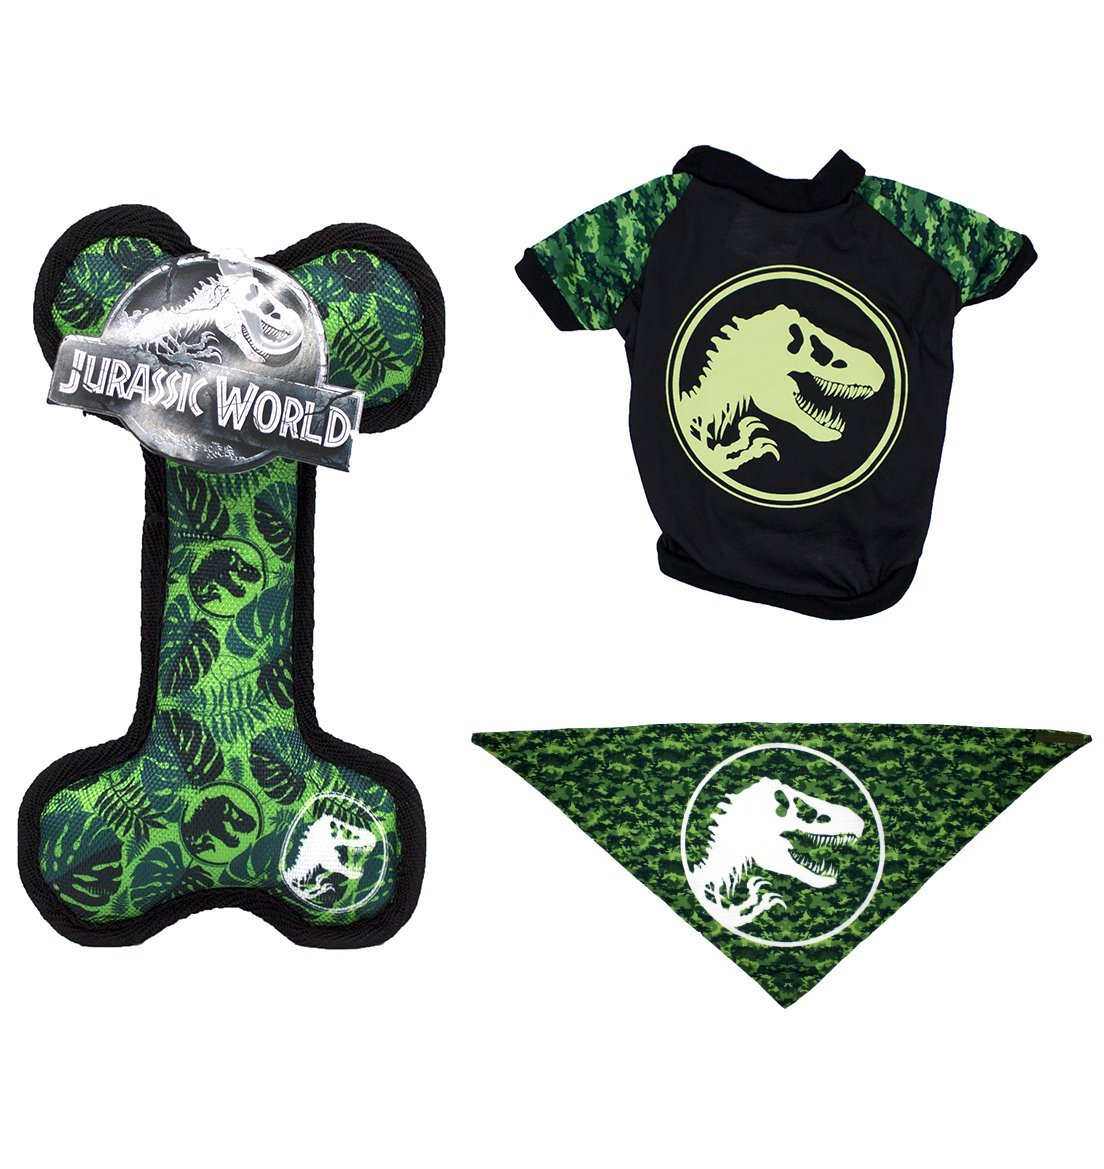 Jurassic World Logo Bandana, Oxford Bone Toy, and Logo T-Shirt in Size Small | Tee, Toy, and Bandana Set For Small Dogs, Small